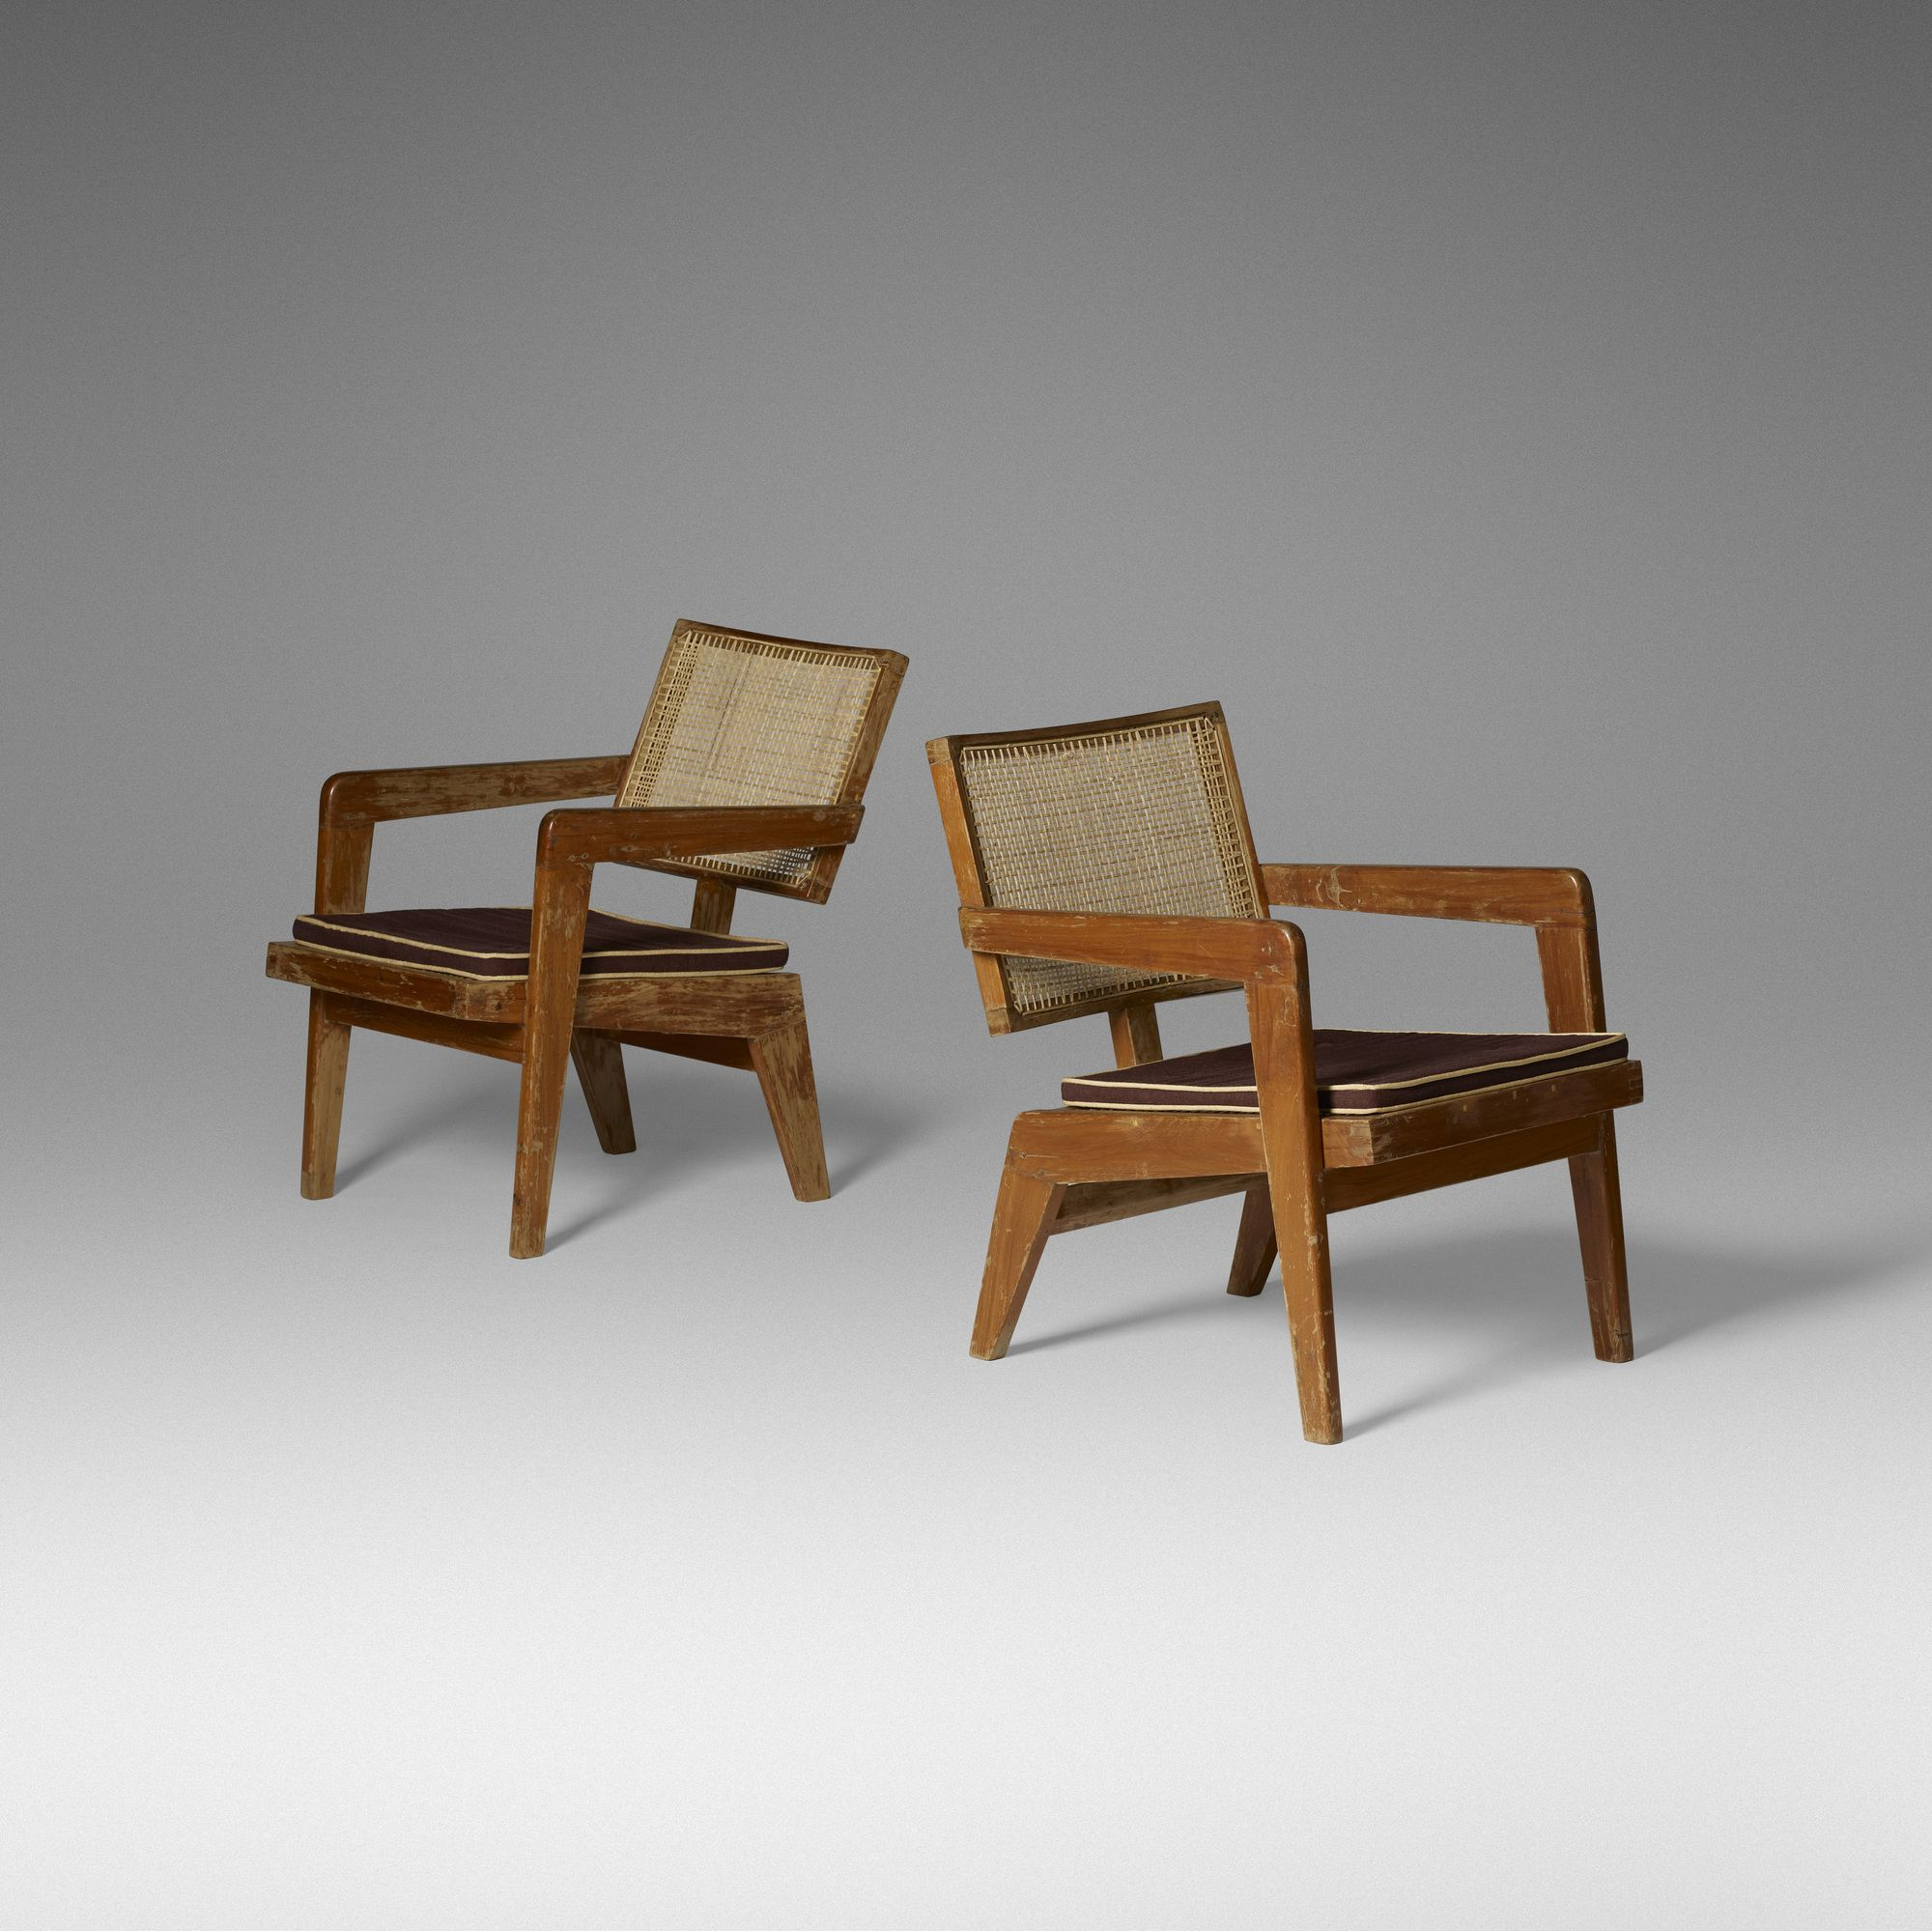 Teak Furniture New York